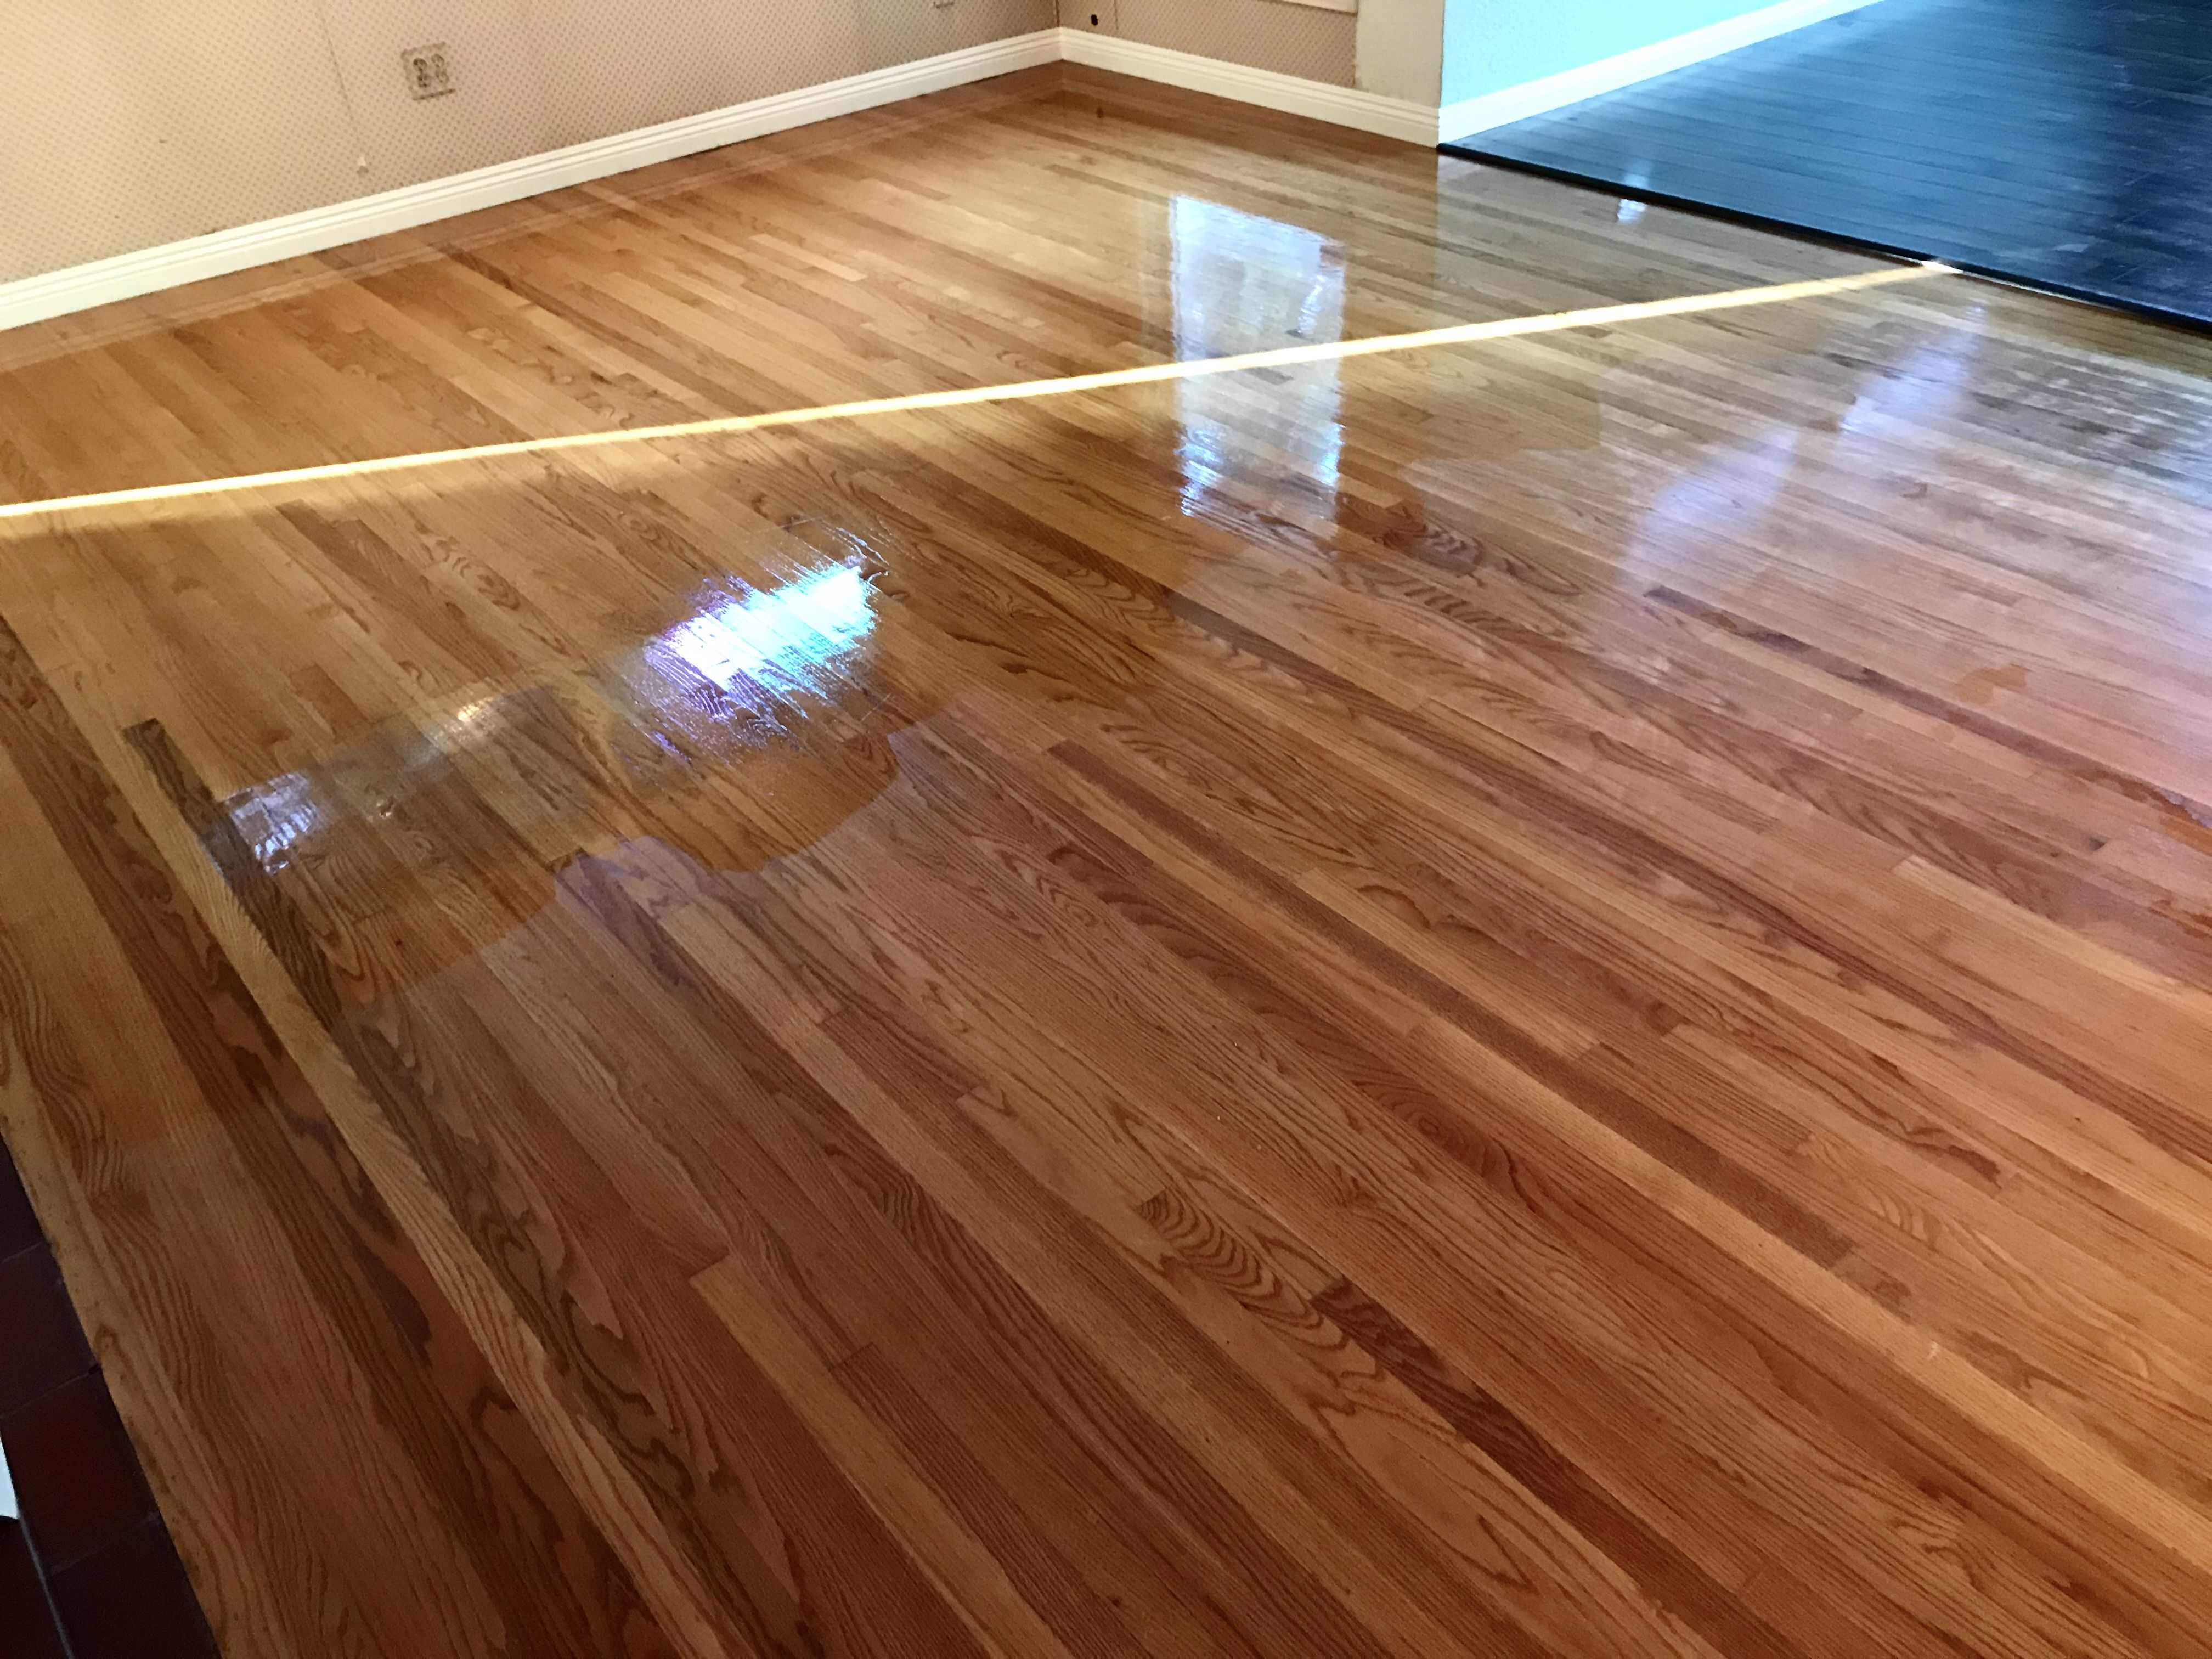 Hardwood Floors Preservation Cleaning In Beverly Hills Ca Visit Our